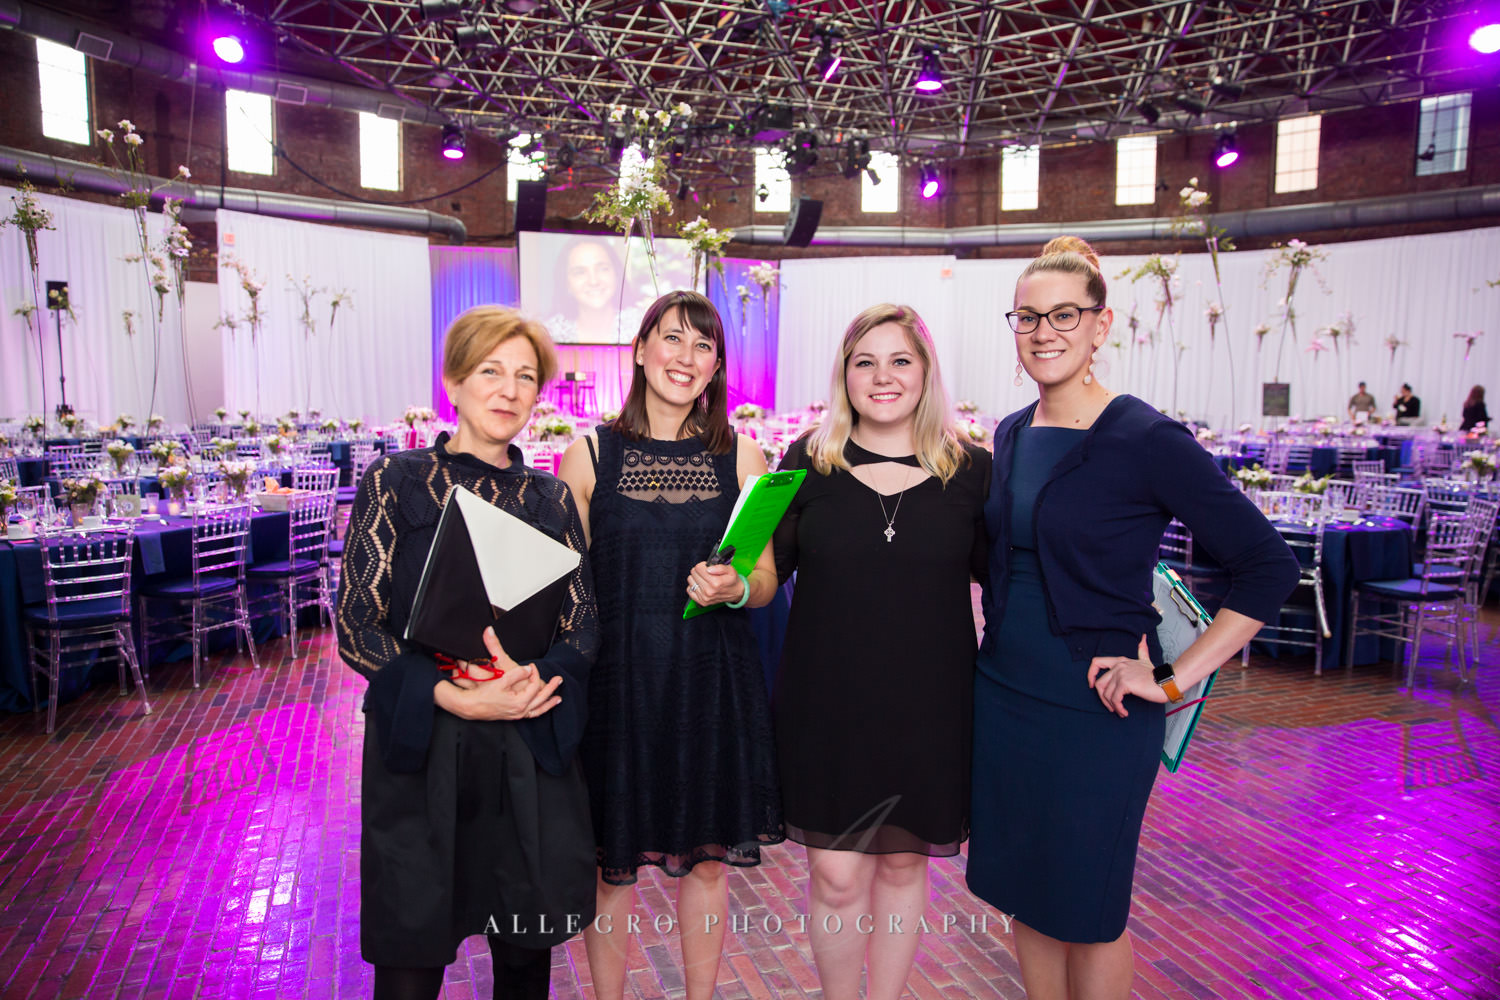 ae events team rosie's place gala boston non-profit event photography